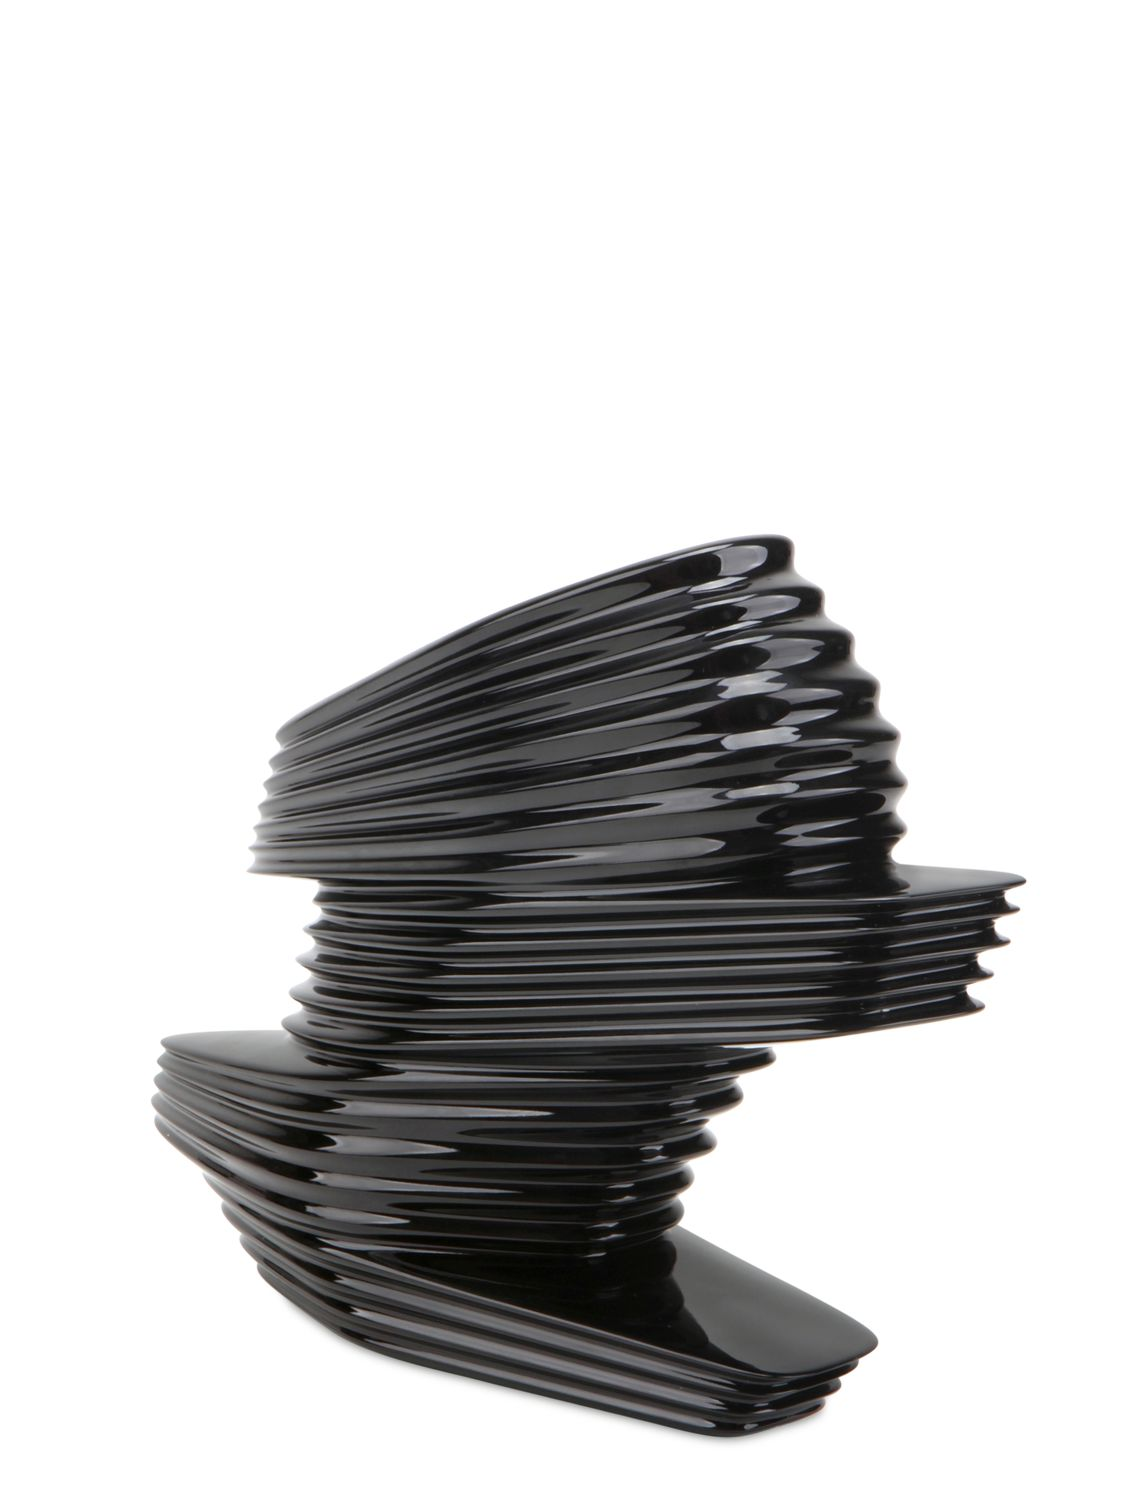 Zaha Hadid Carbon Fibre High Heels for United Nude